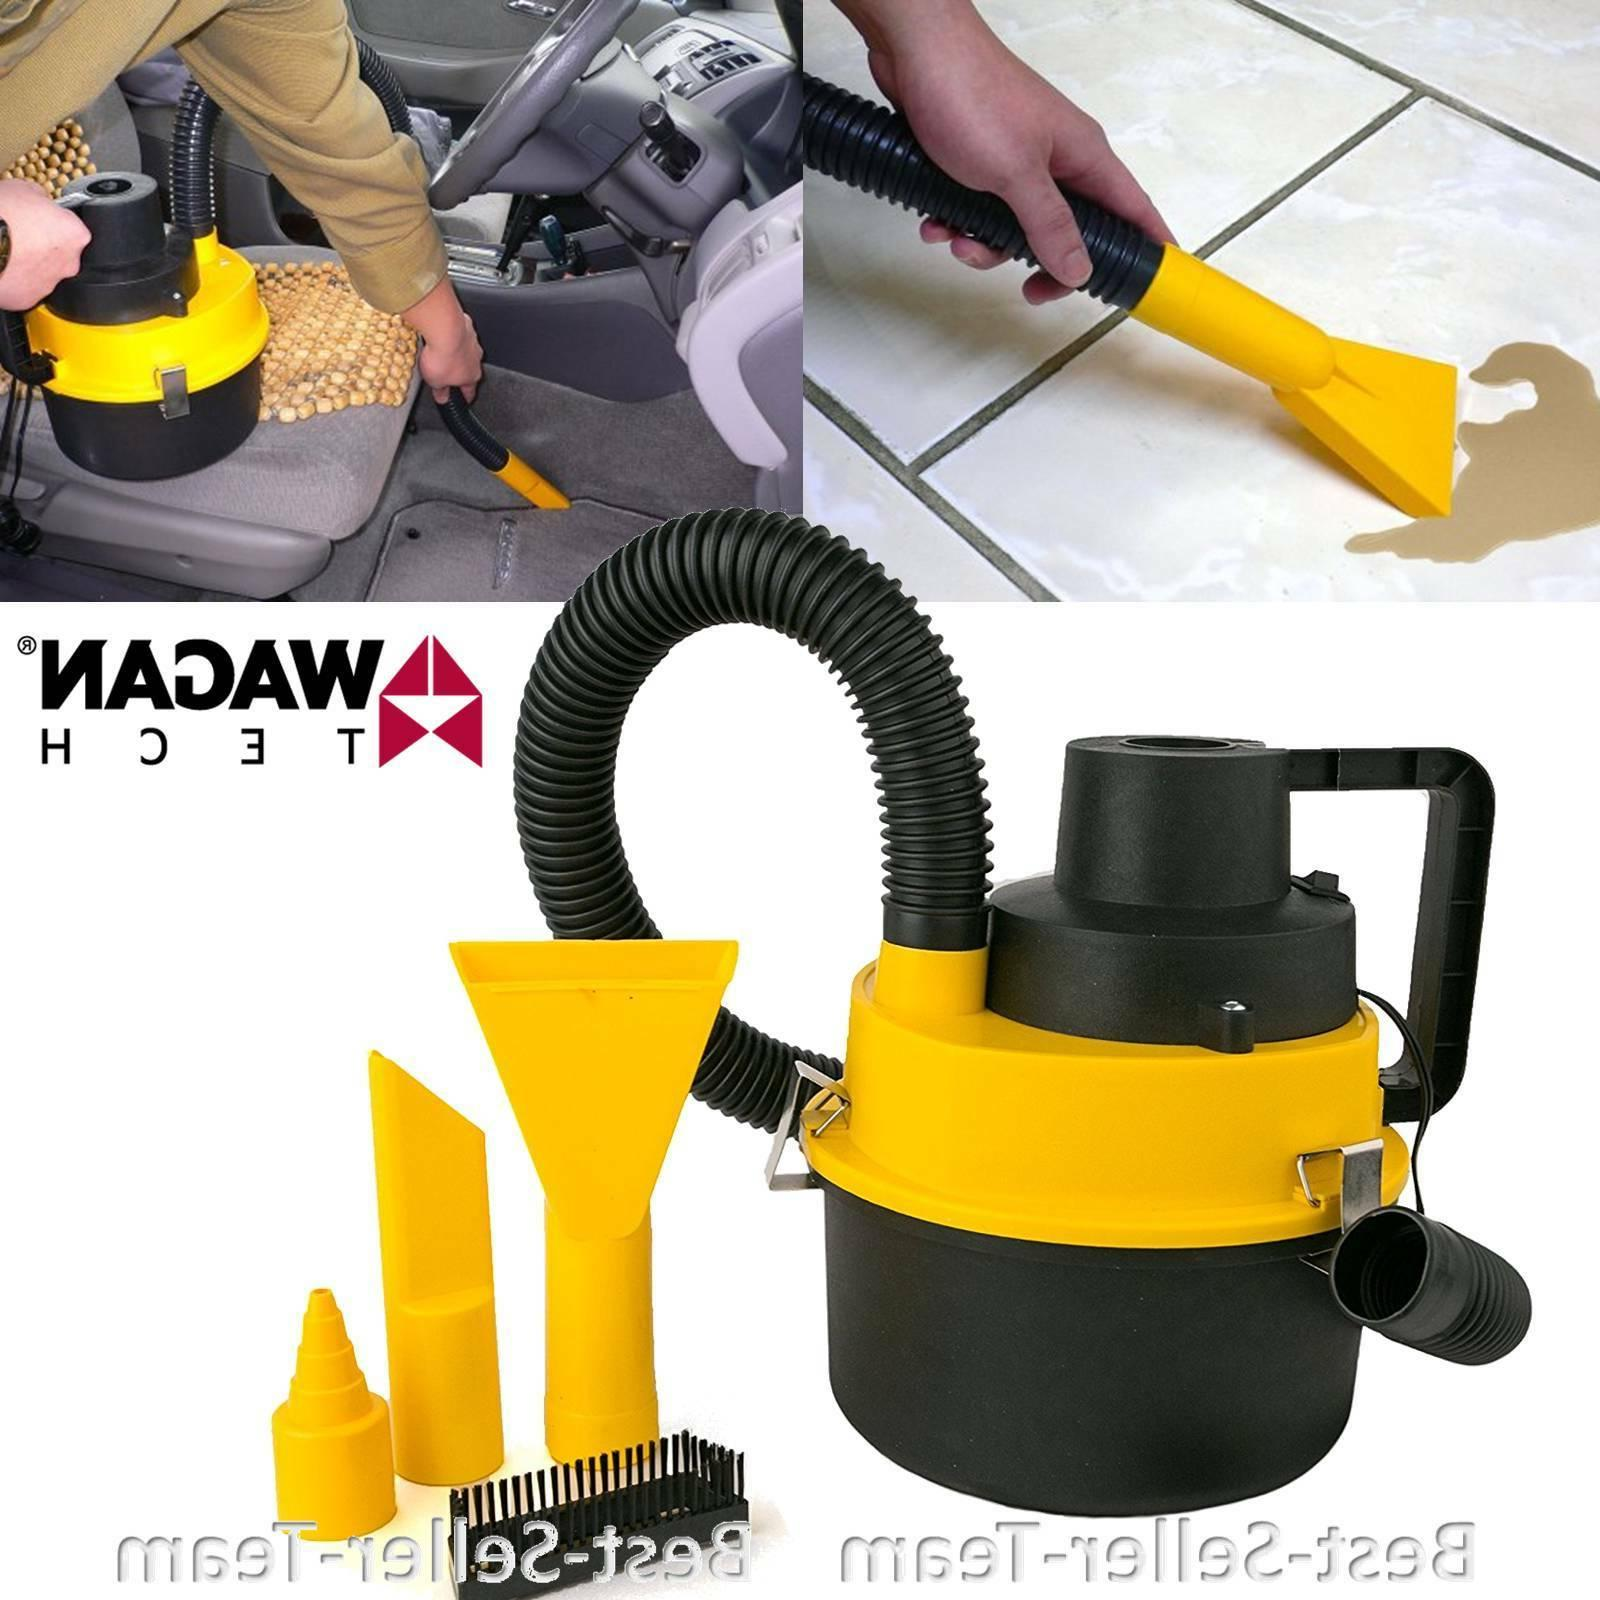 Wagan 750 Wet and Dry UltraVac with Air Inflator